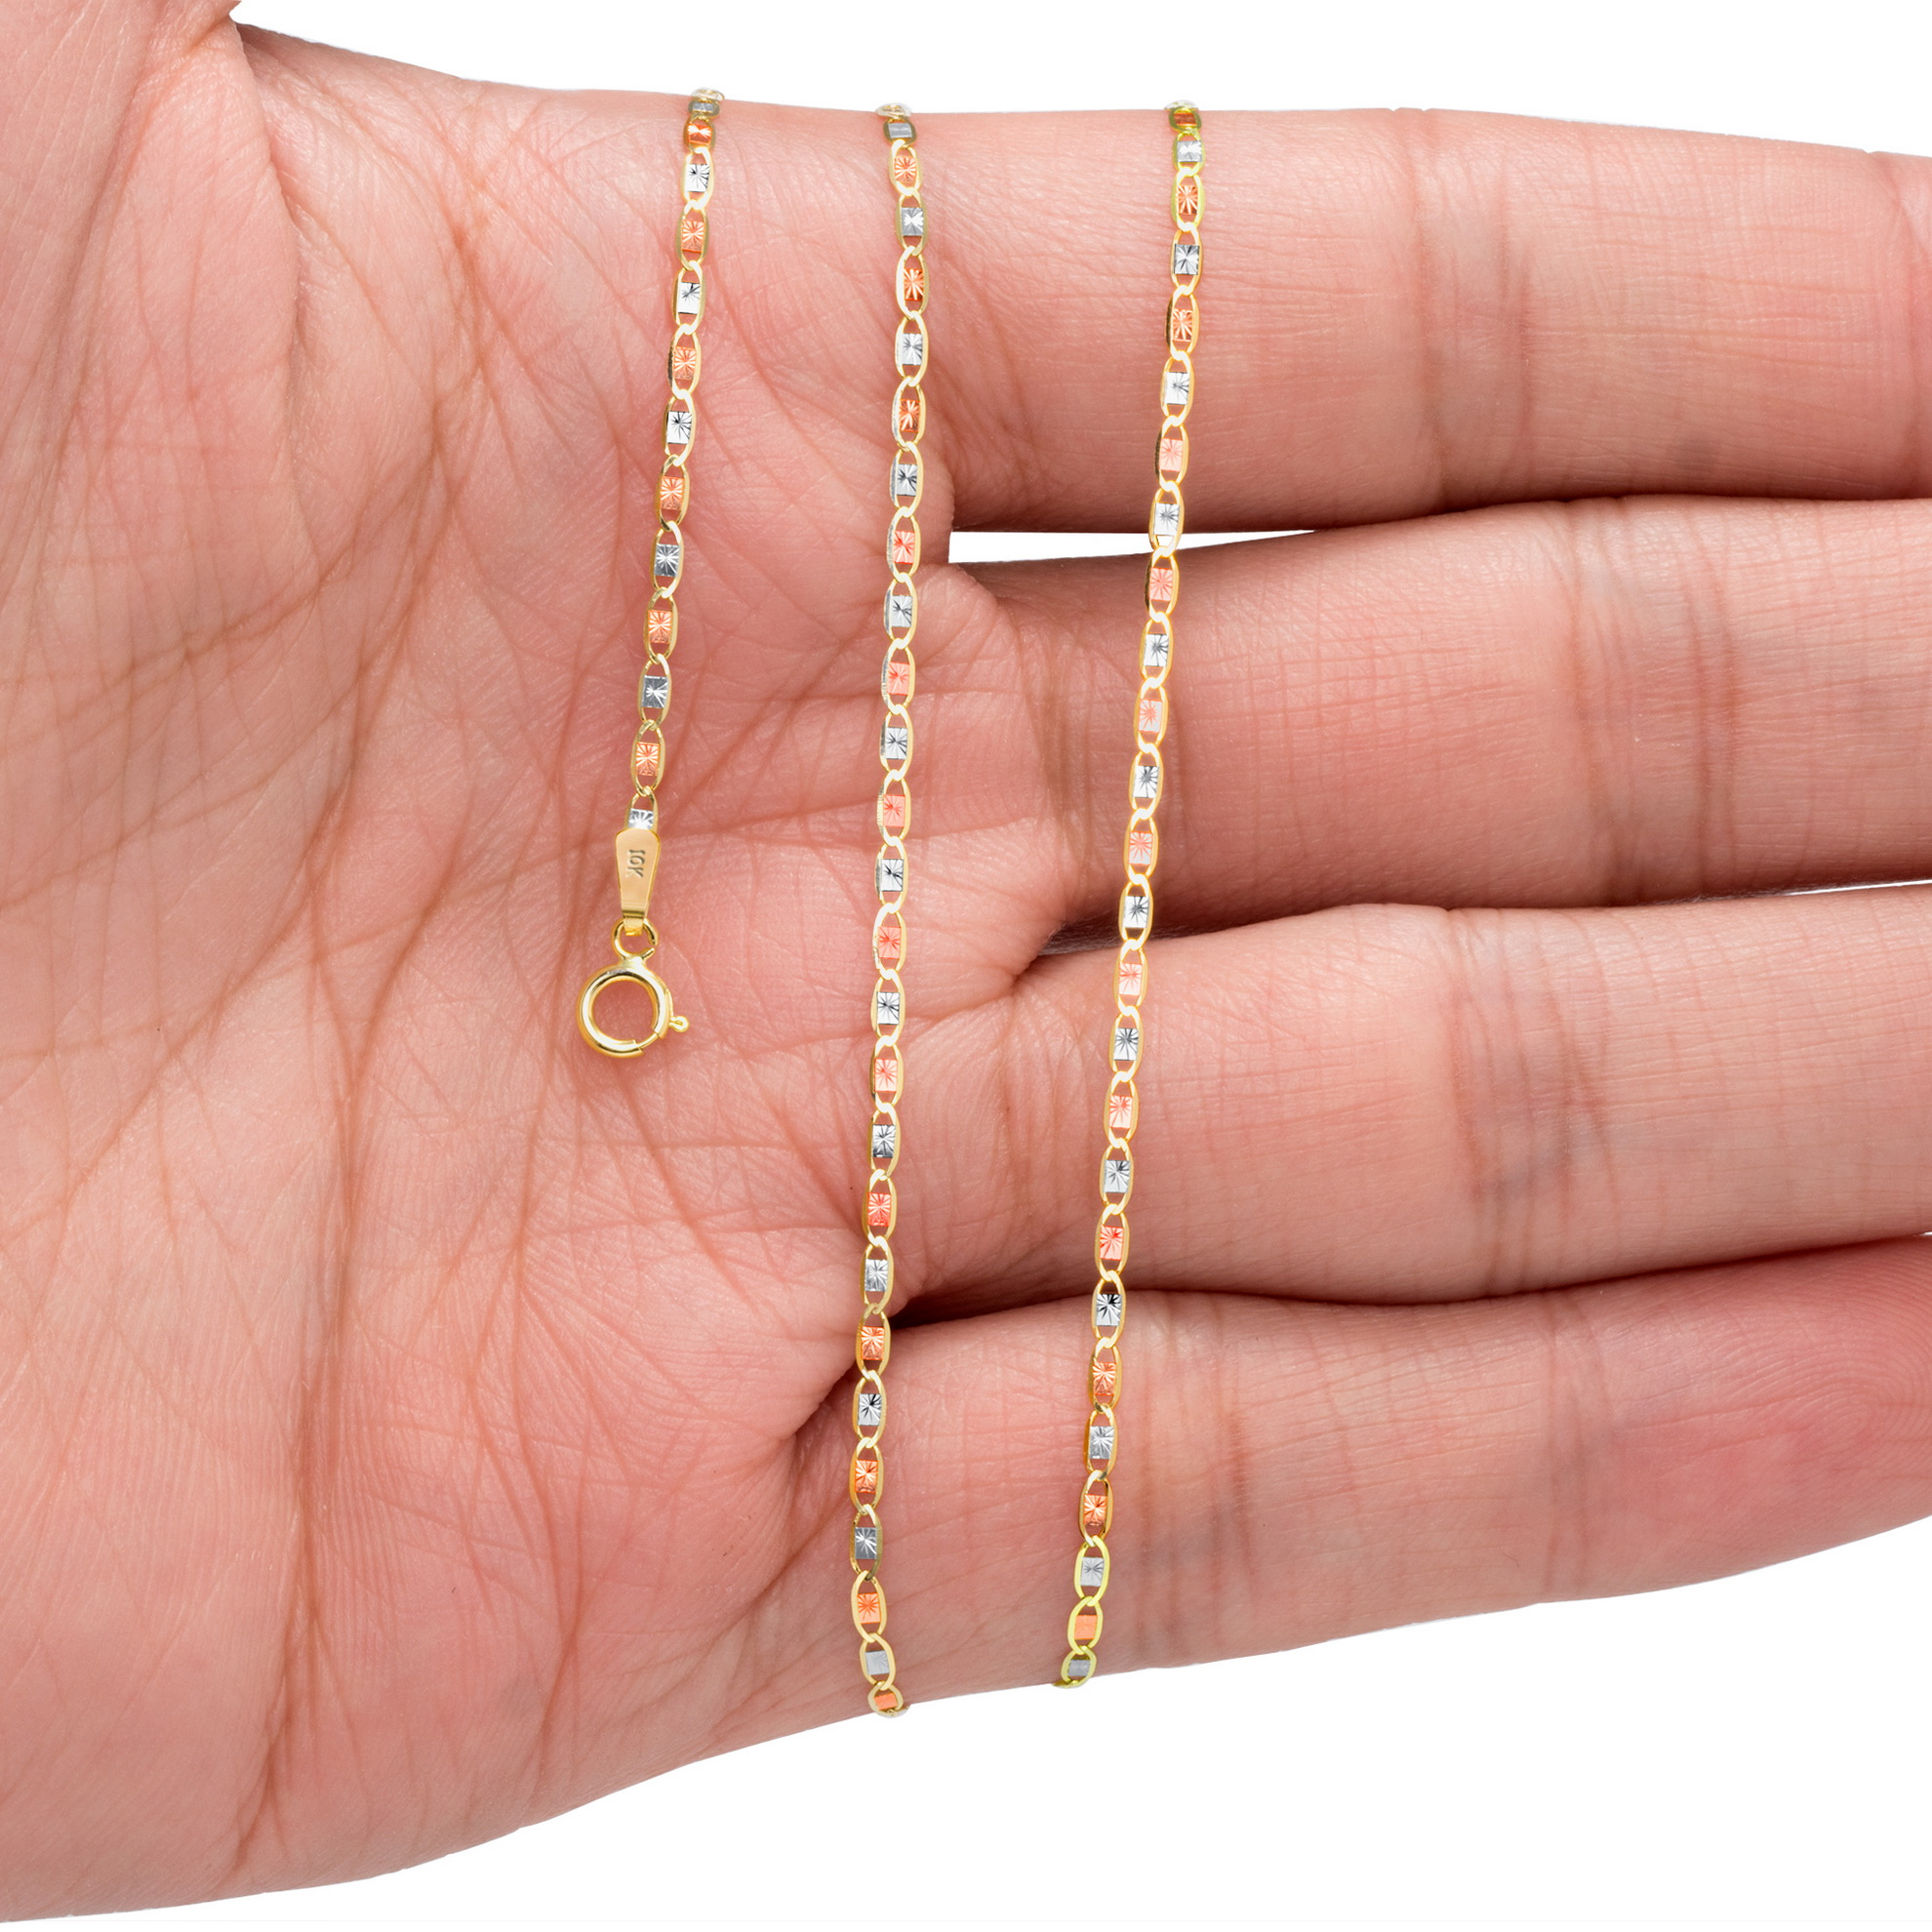 10K-Yellow-Rose-White-Gold-1-5mm-6mm-Valentino-Chain-Necklace-Bracelet-7-034-30-034 thumbnail 12